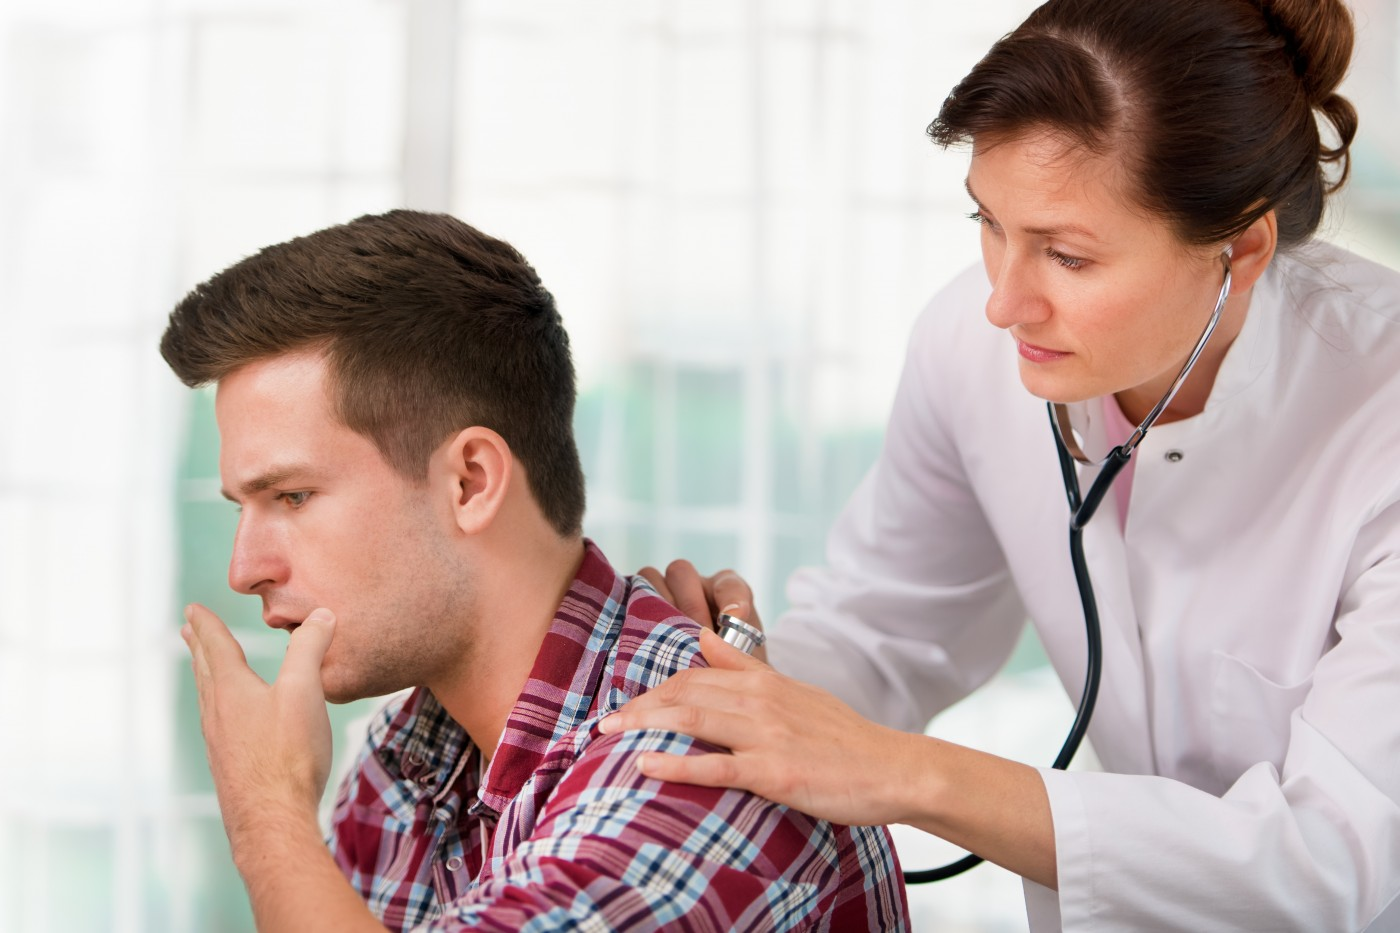 Quality of life for boys and young men with hemophilia